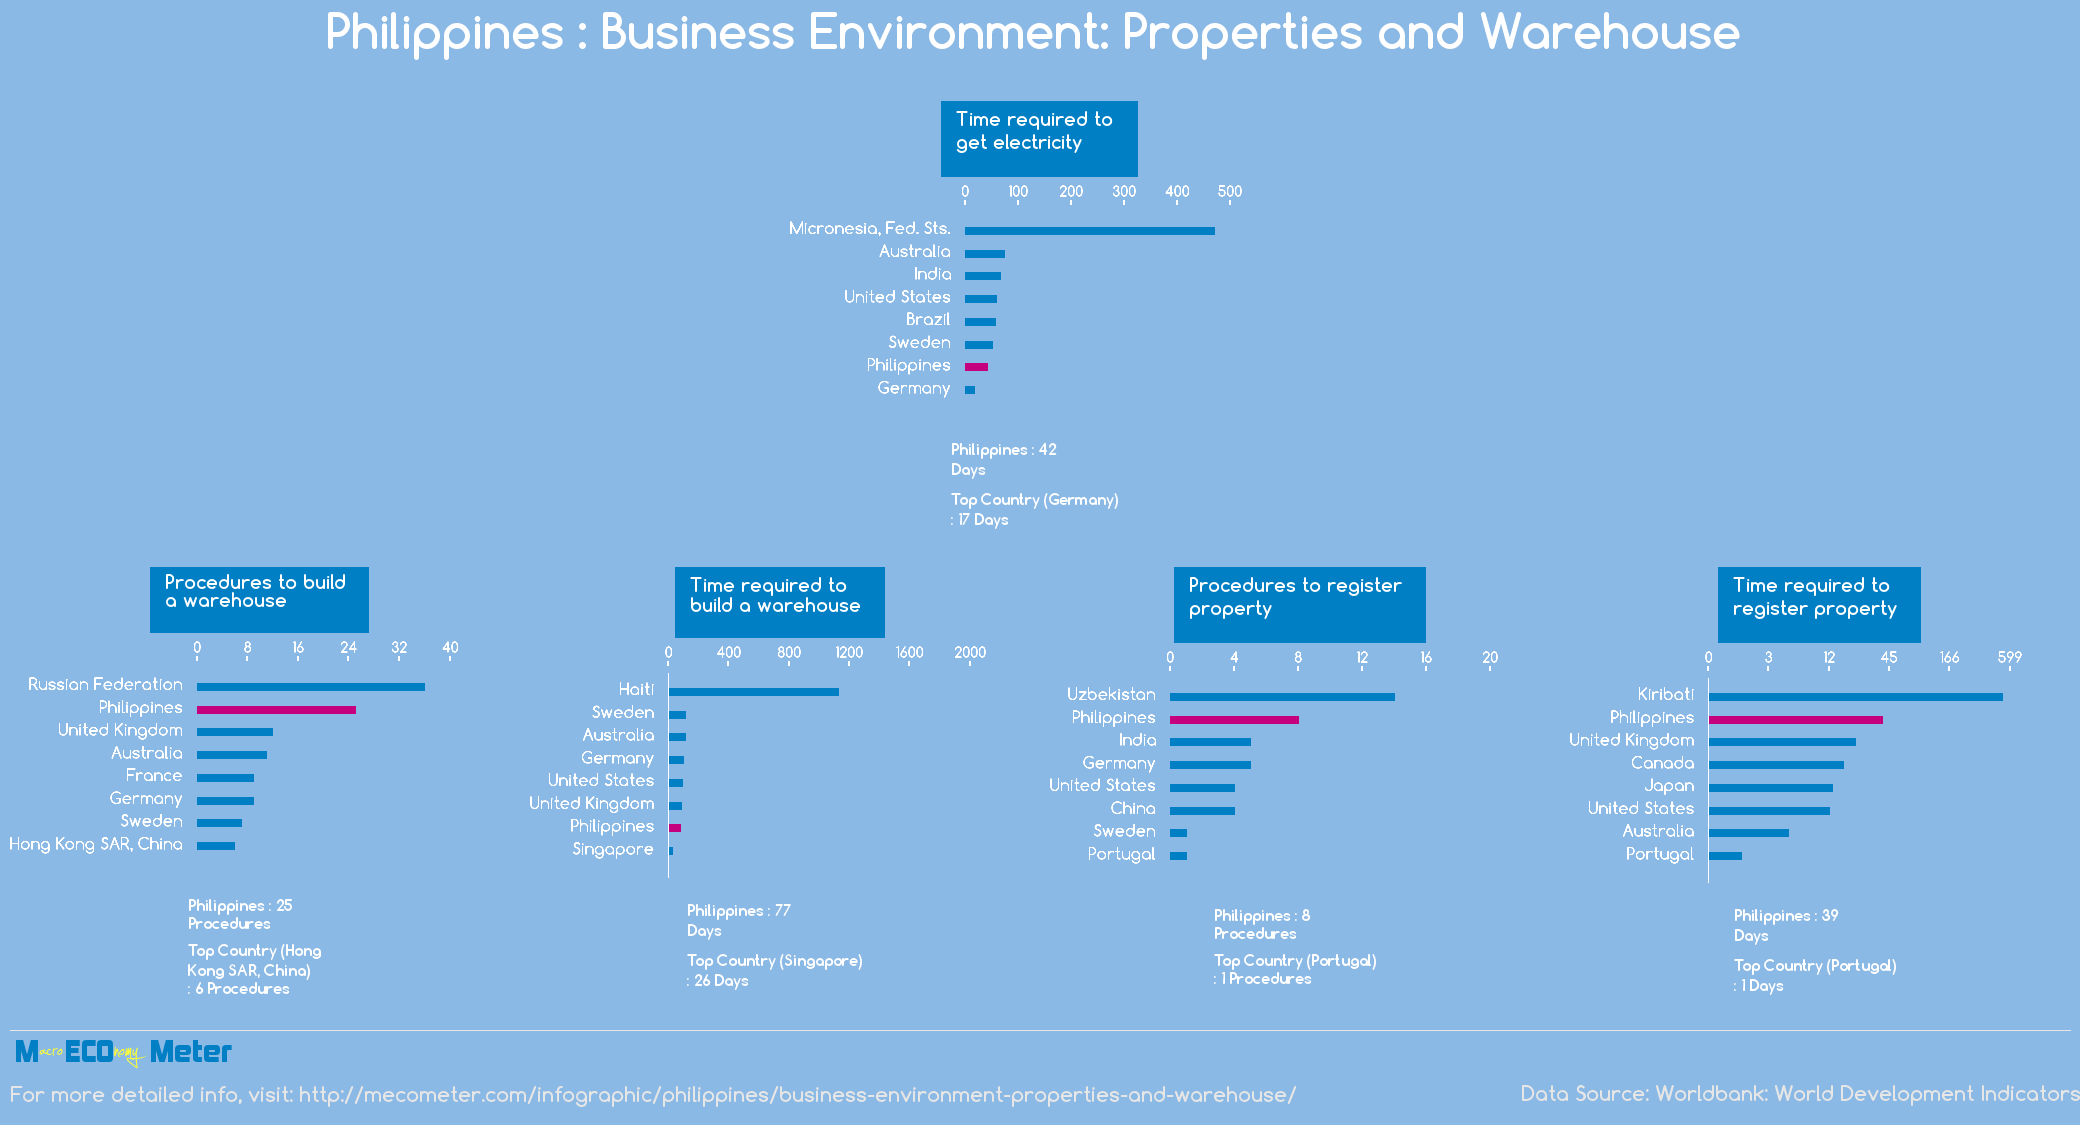 Philippines : Business Environment: Properties and Warehouse